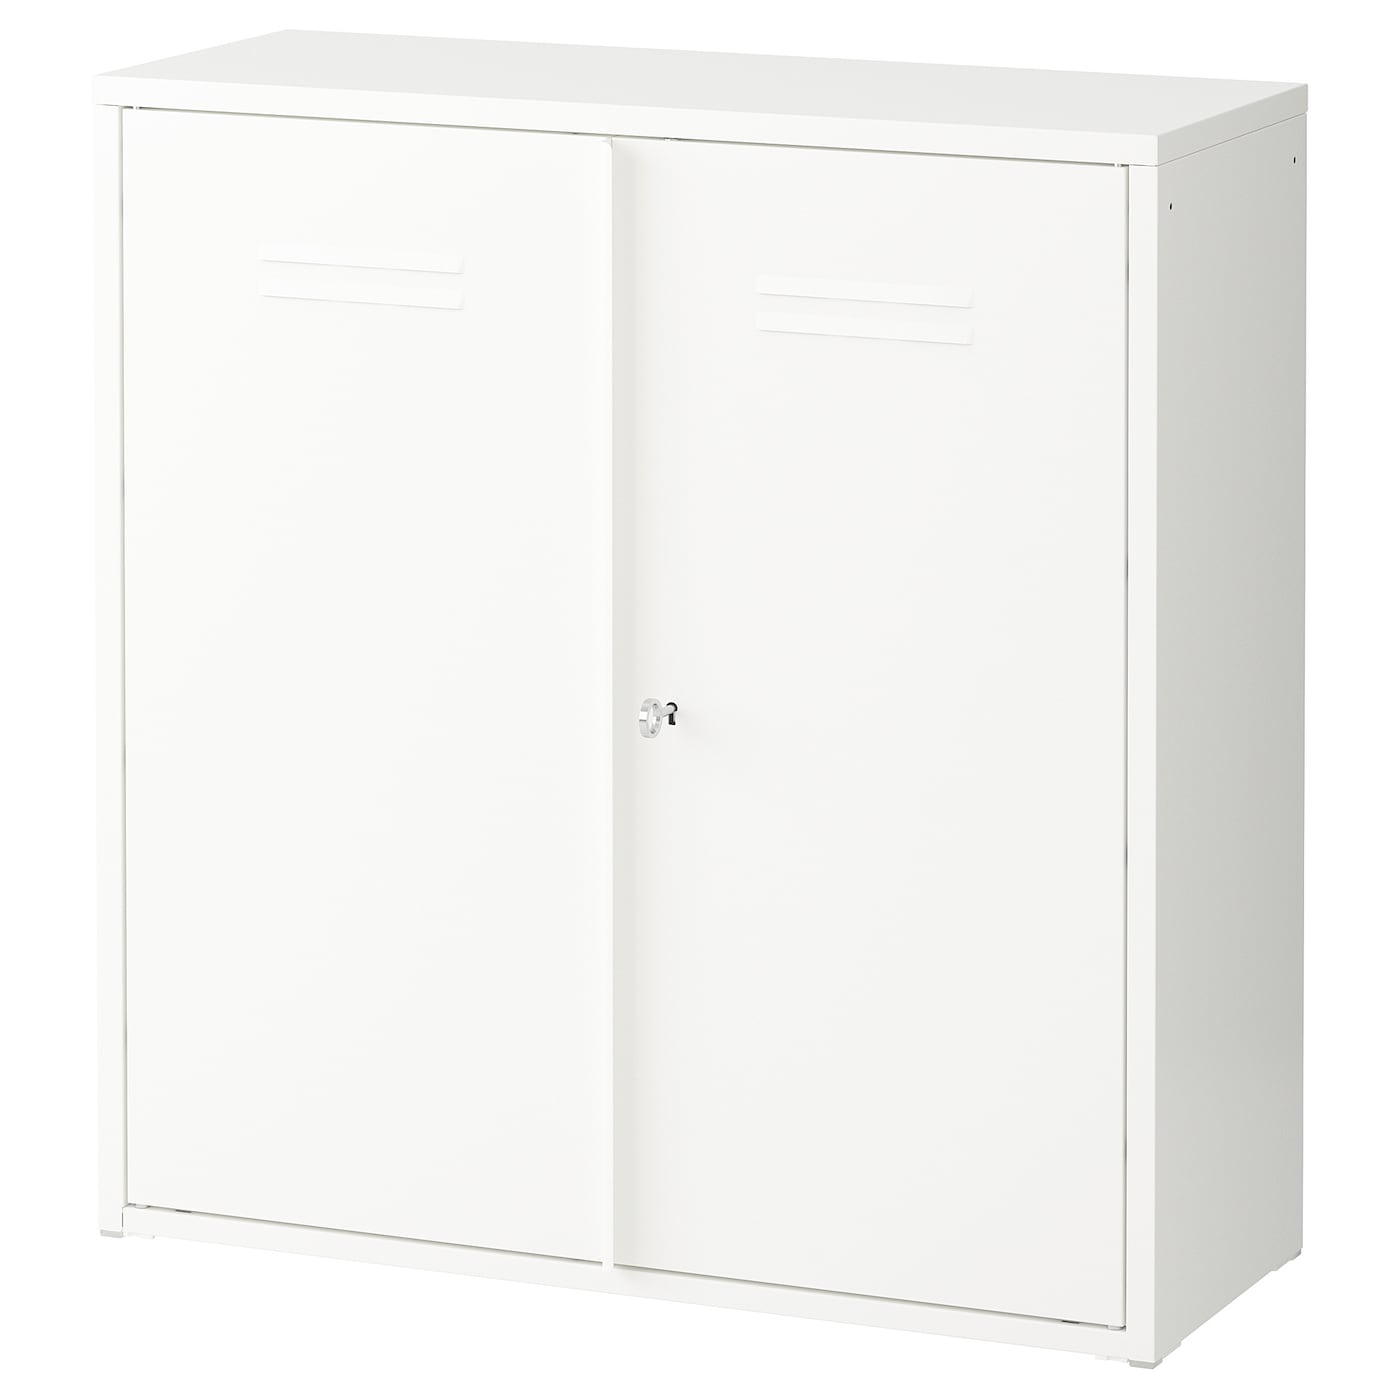 Ivar cabinet with doors white 80x83 cm ikea - Ikea cabinet doors on existing cabinets ...